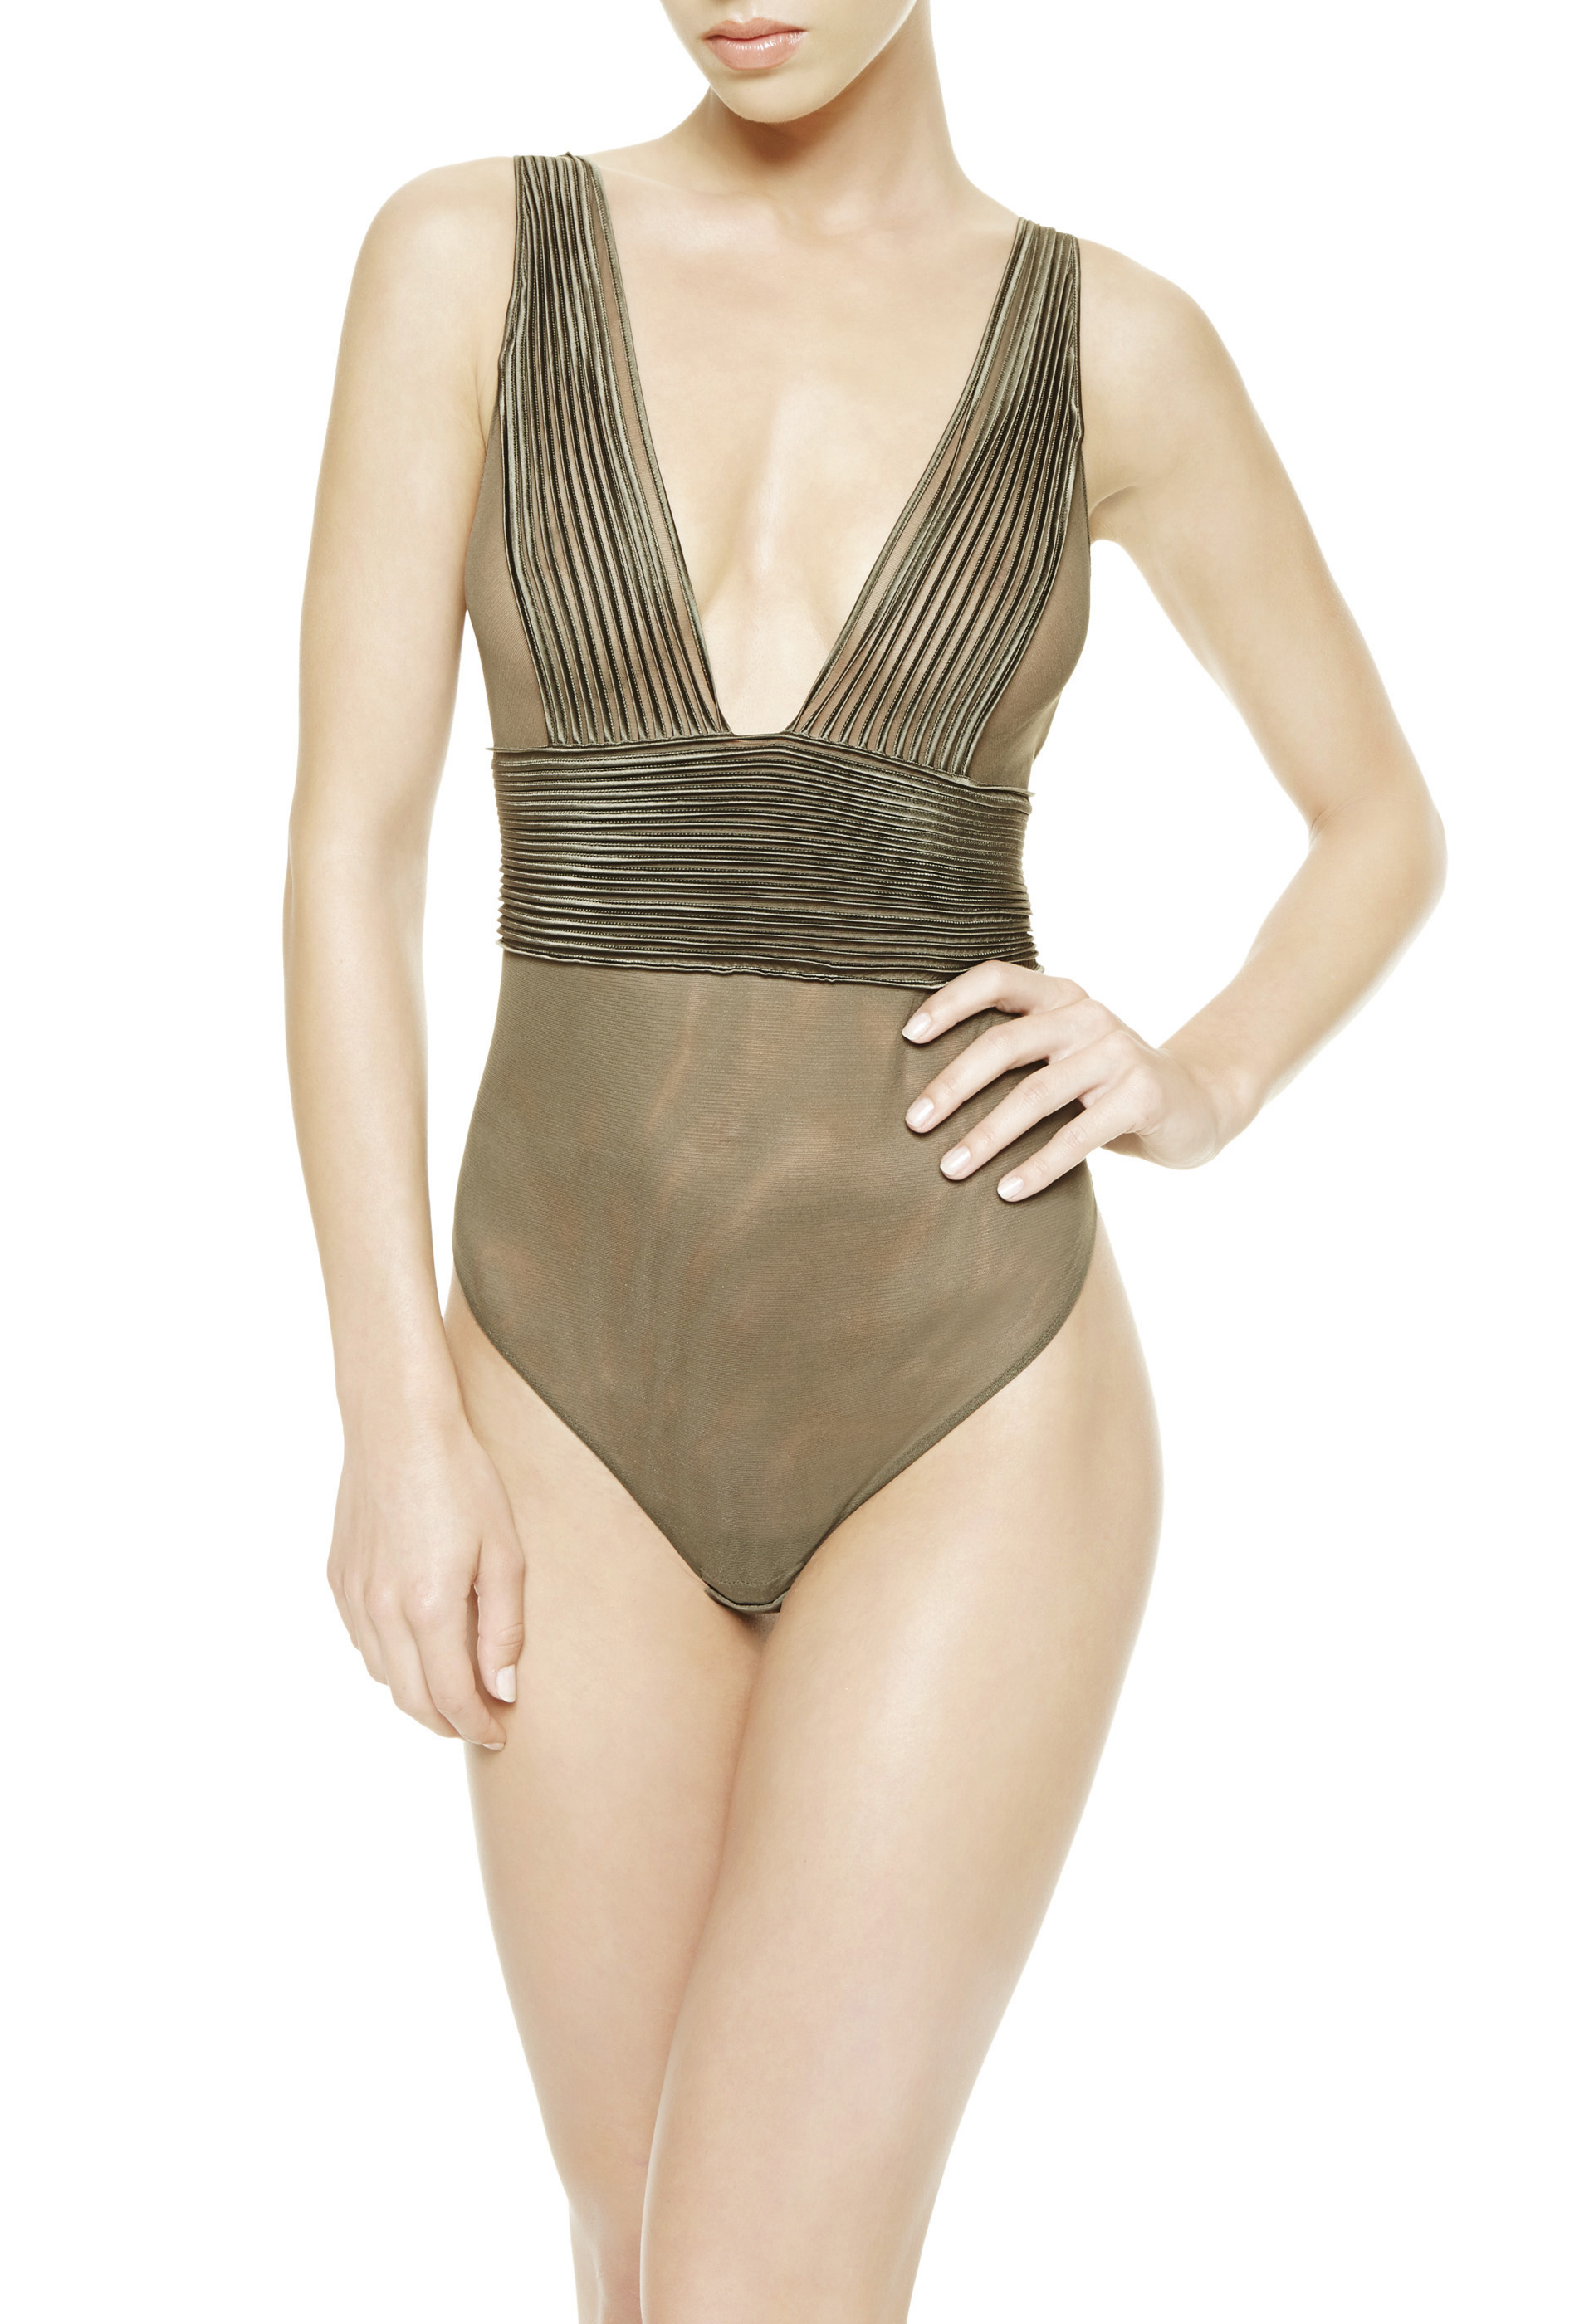 laperla bodysuits 14-22